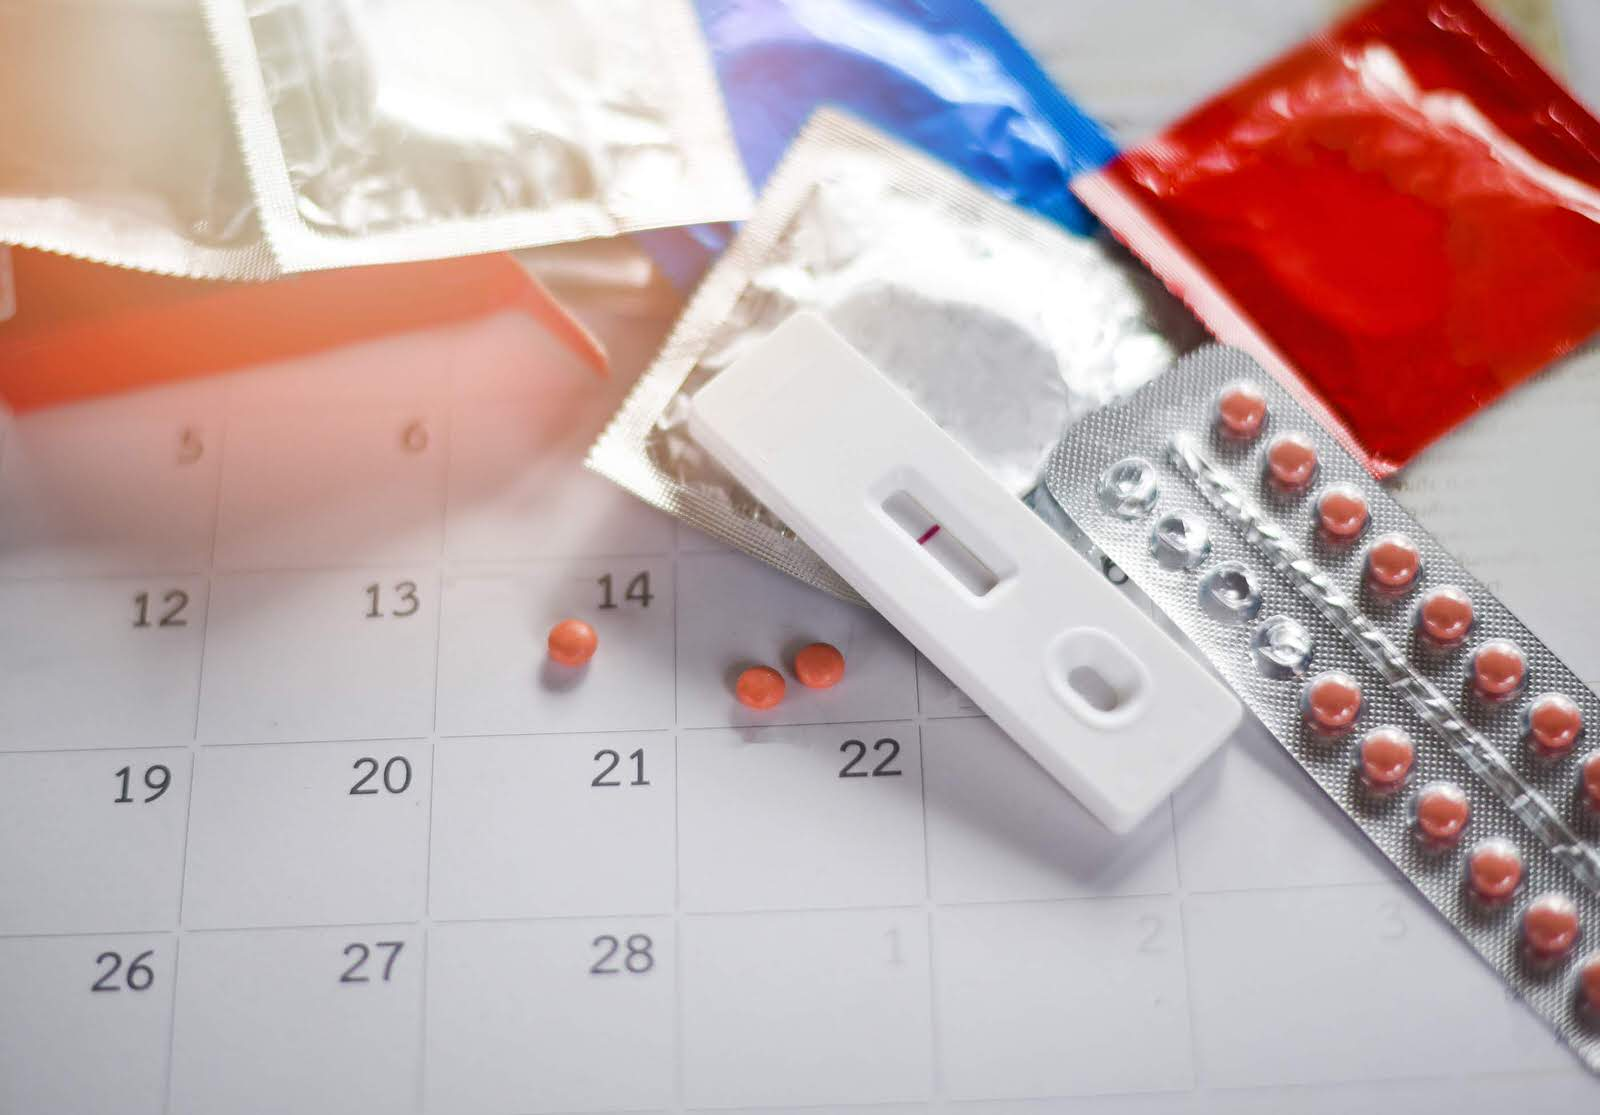 Methods of Oral Contraception